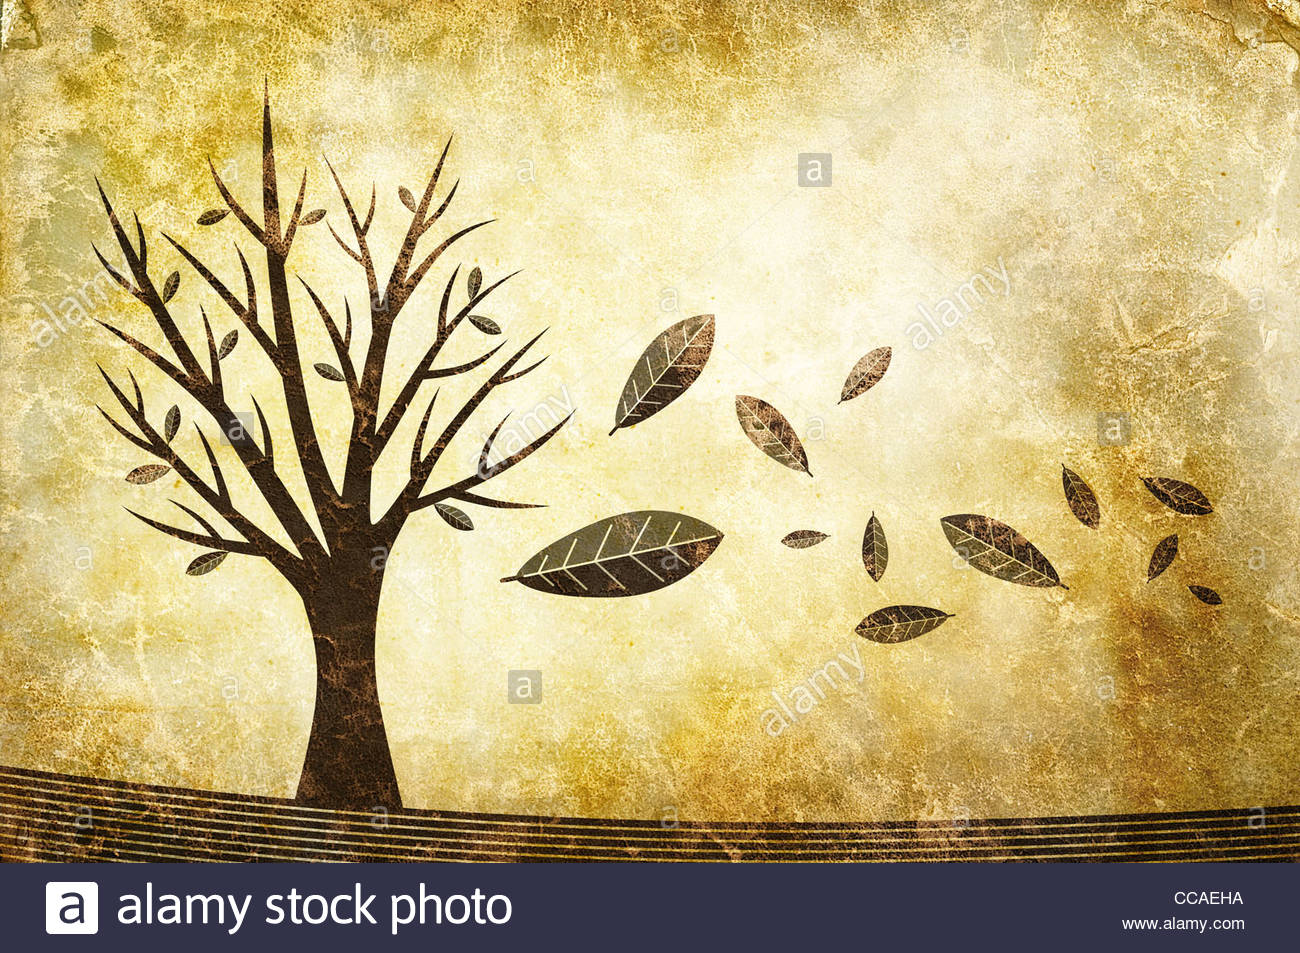 autumn illustration - Stock Image